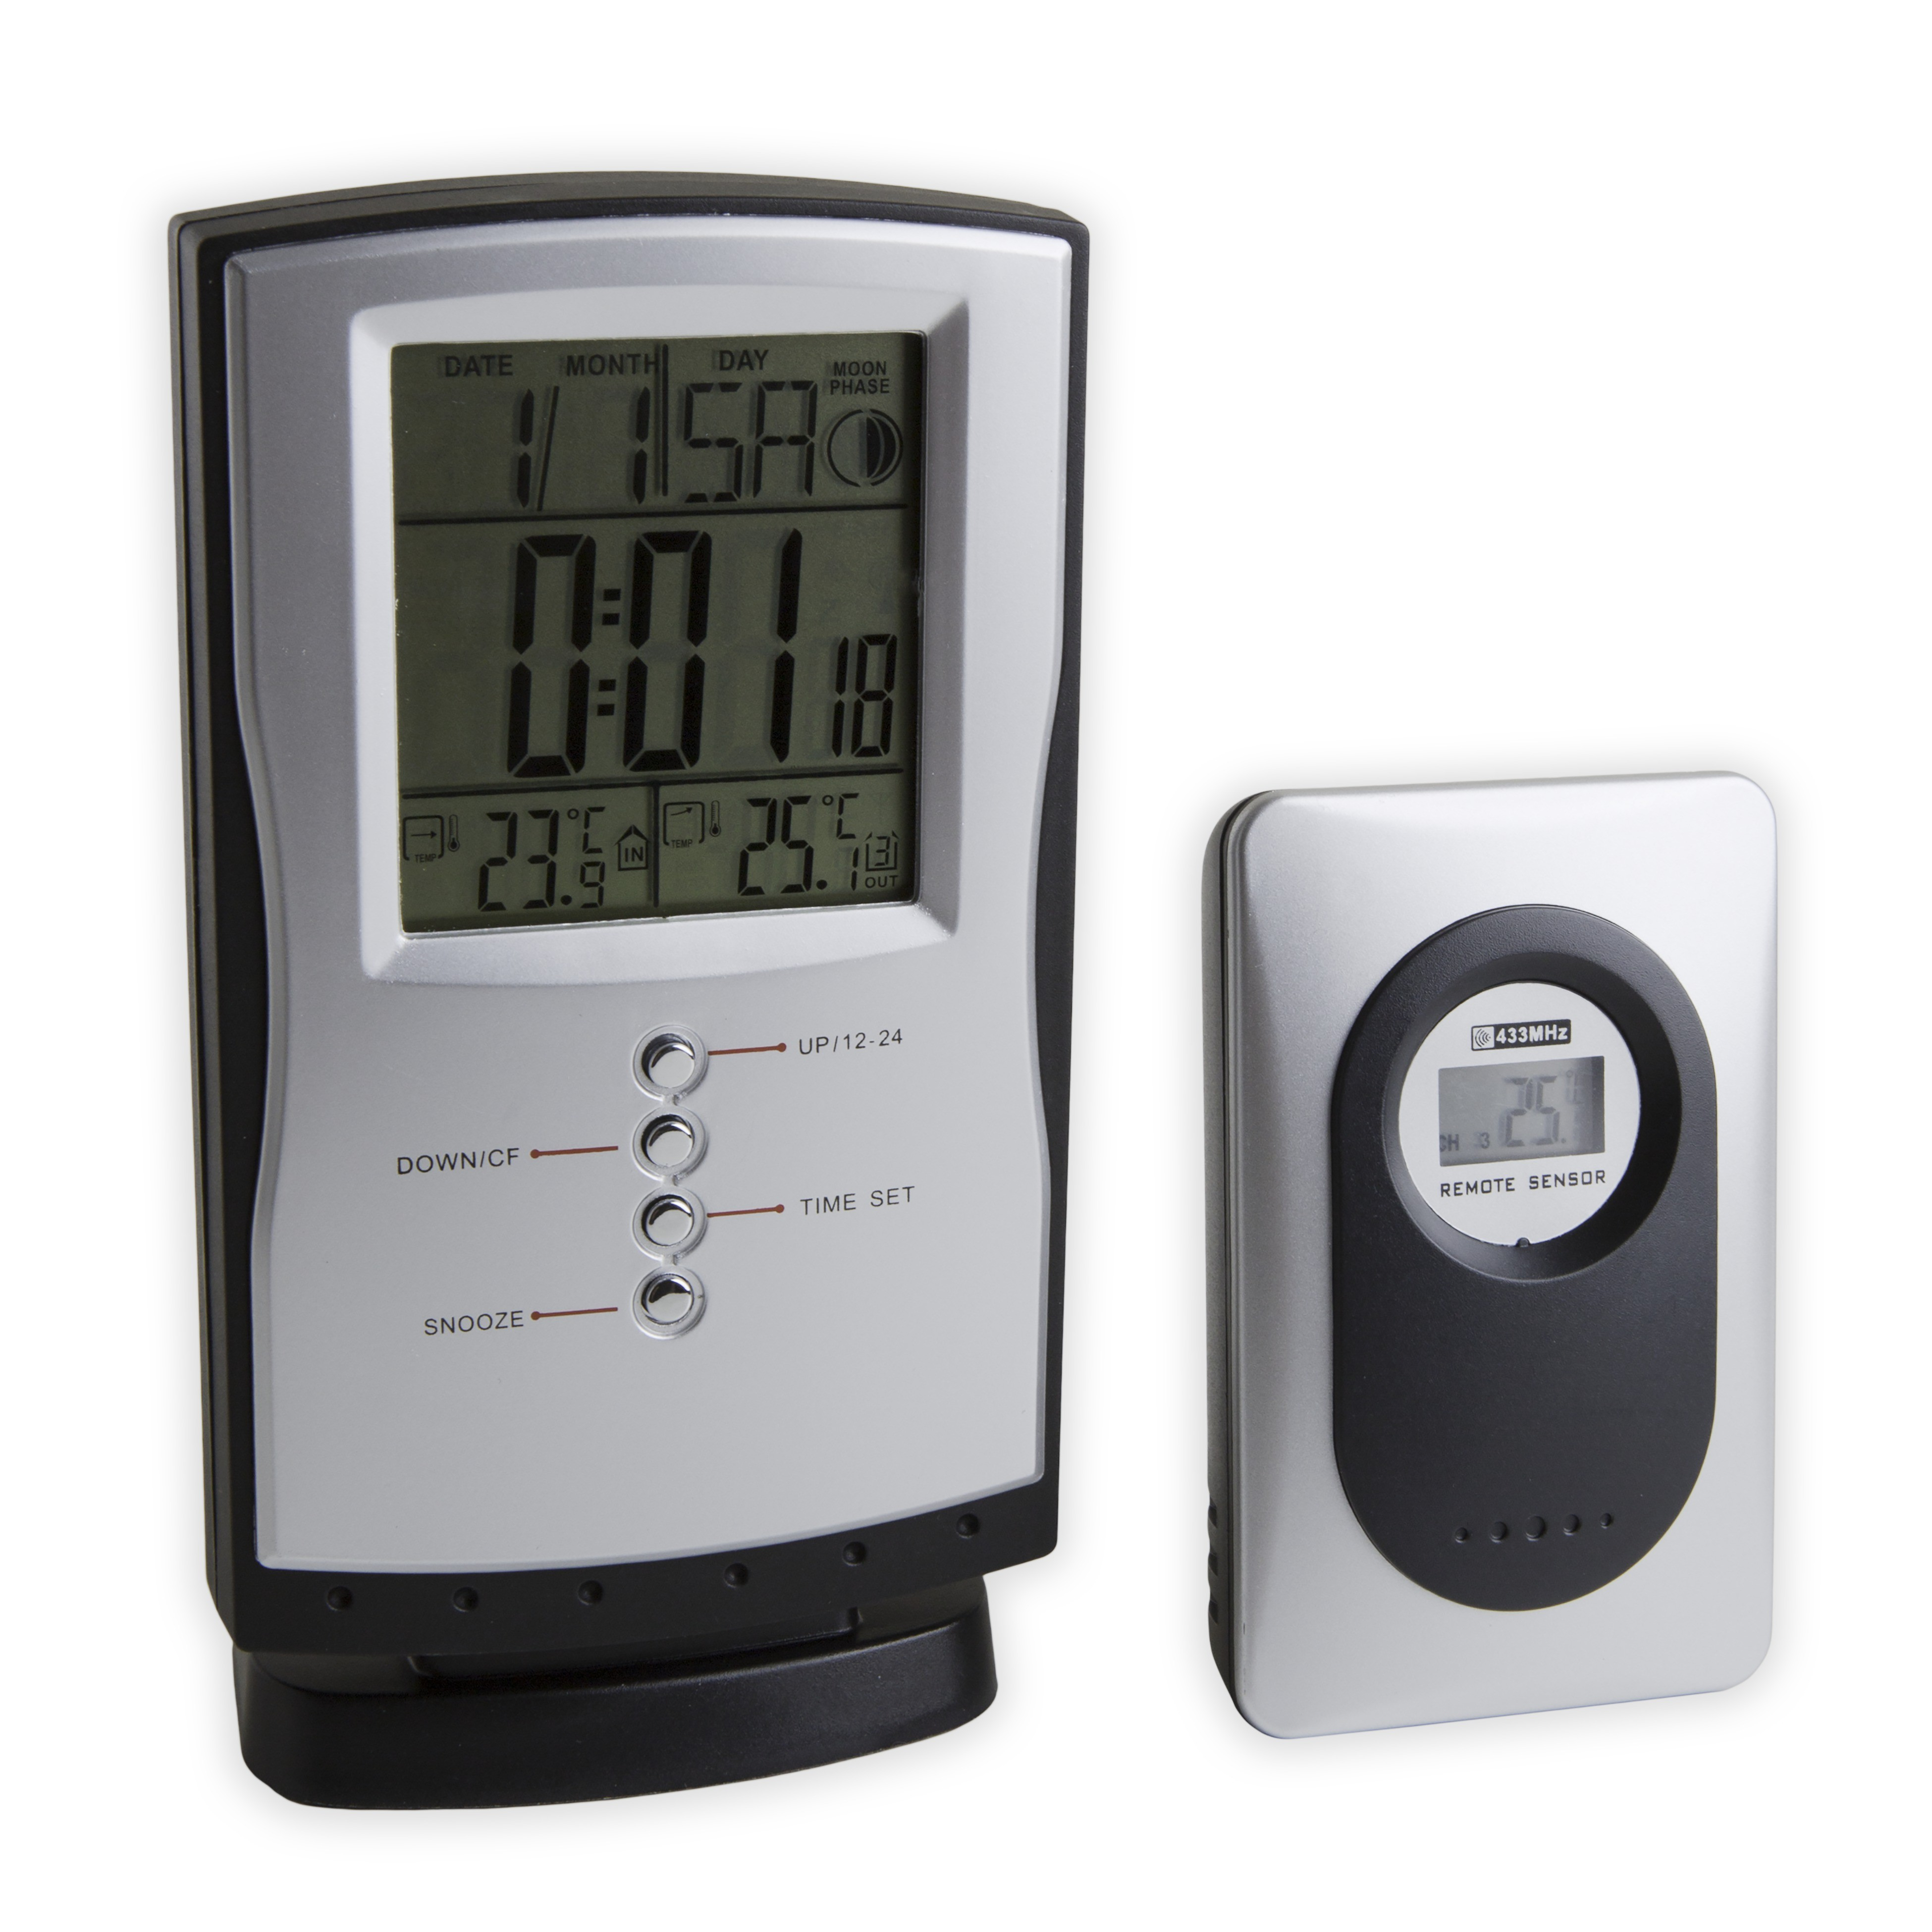 SP Bel-Art, H-B DURAC Indoor/Outdoor Weather Station with Moon Phases, Temperature Trend, Max/Min Memory and Temperature Alert